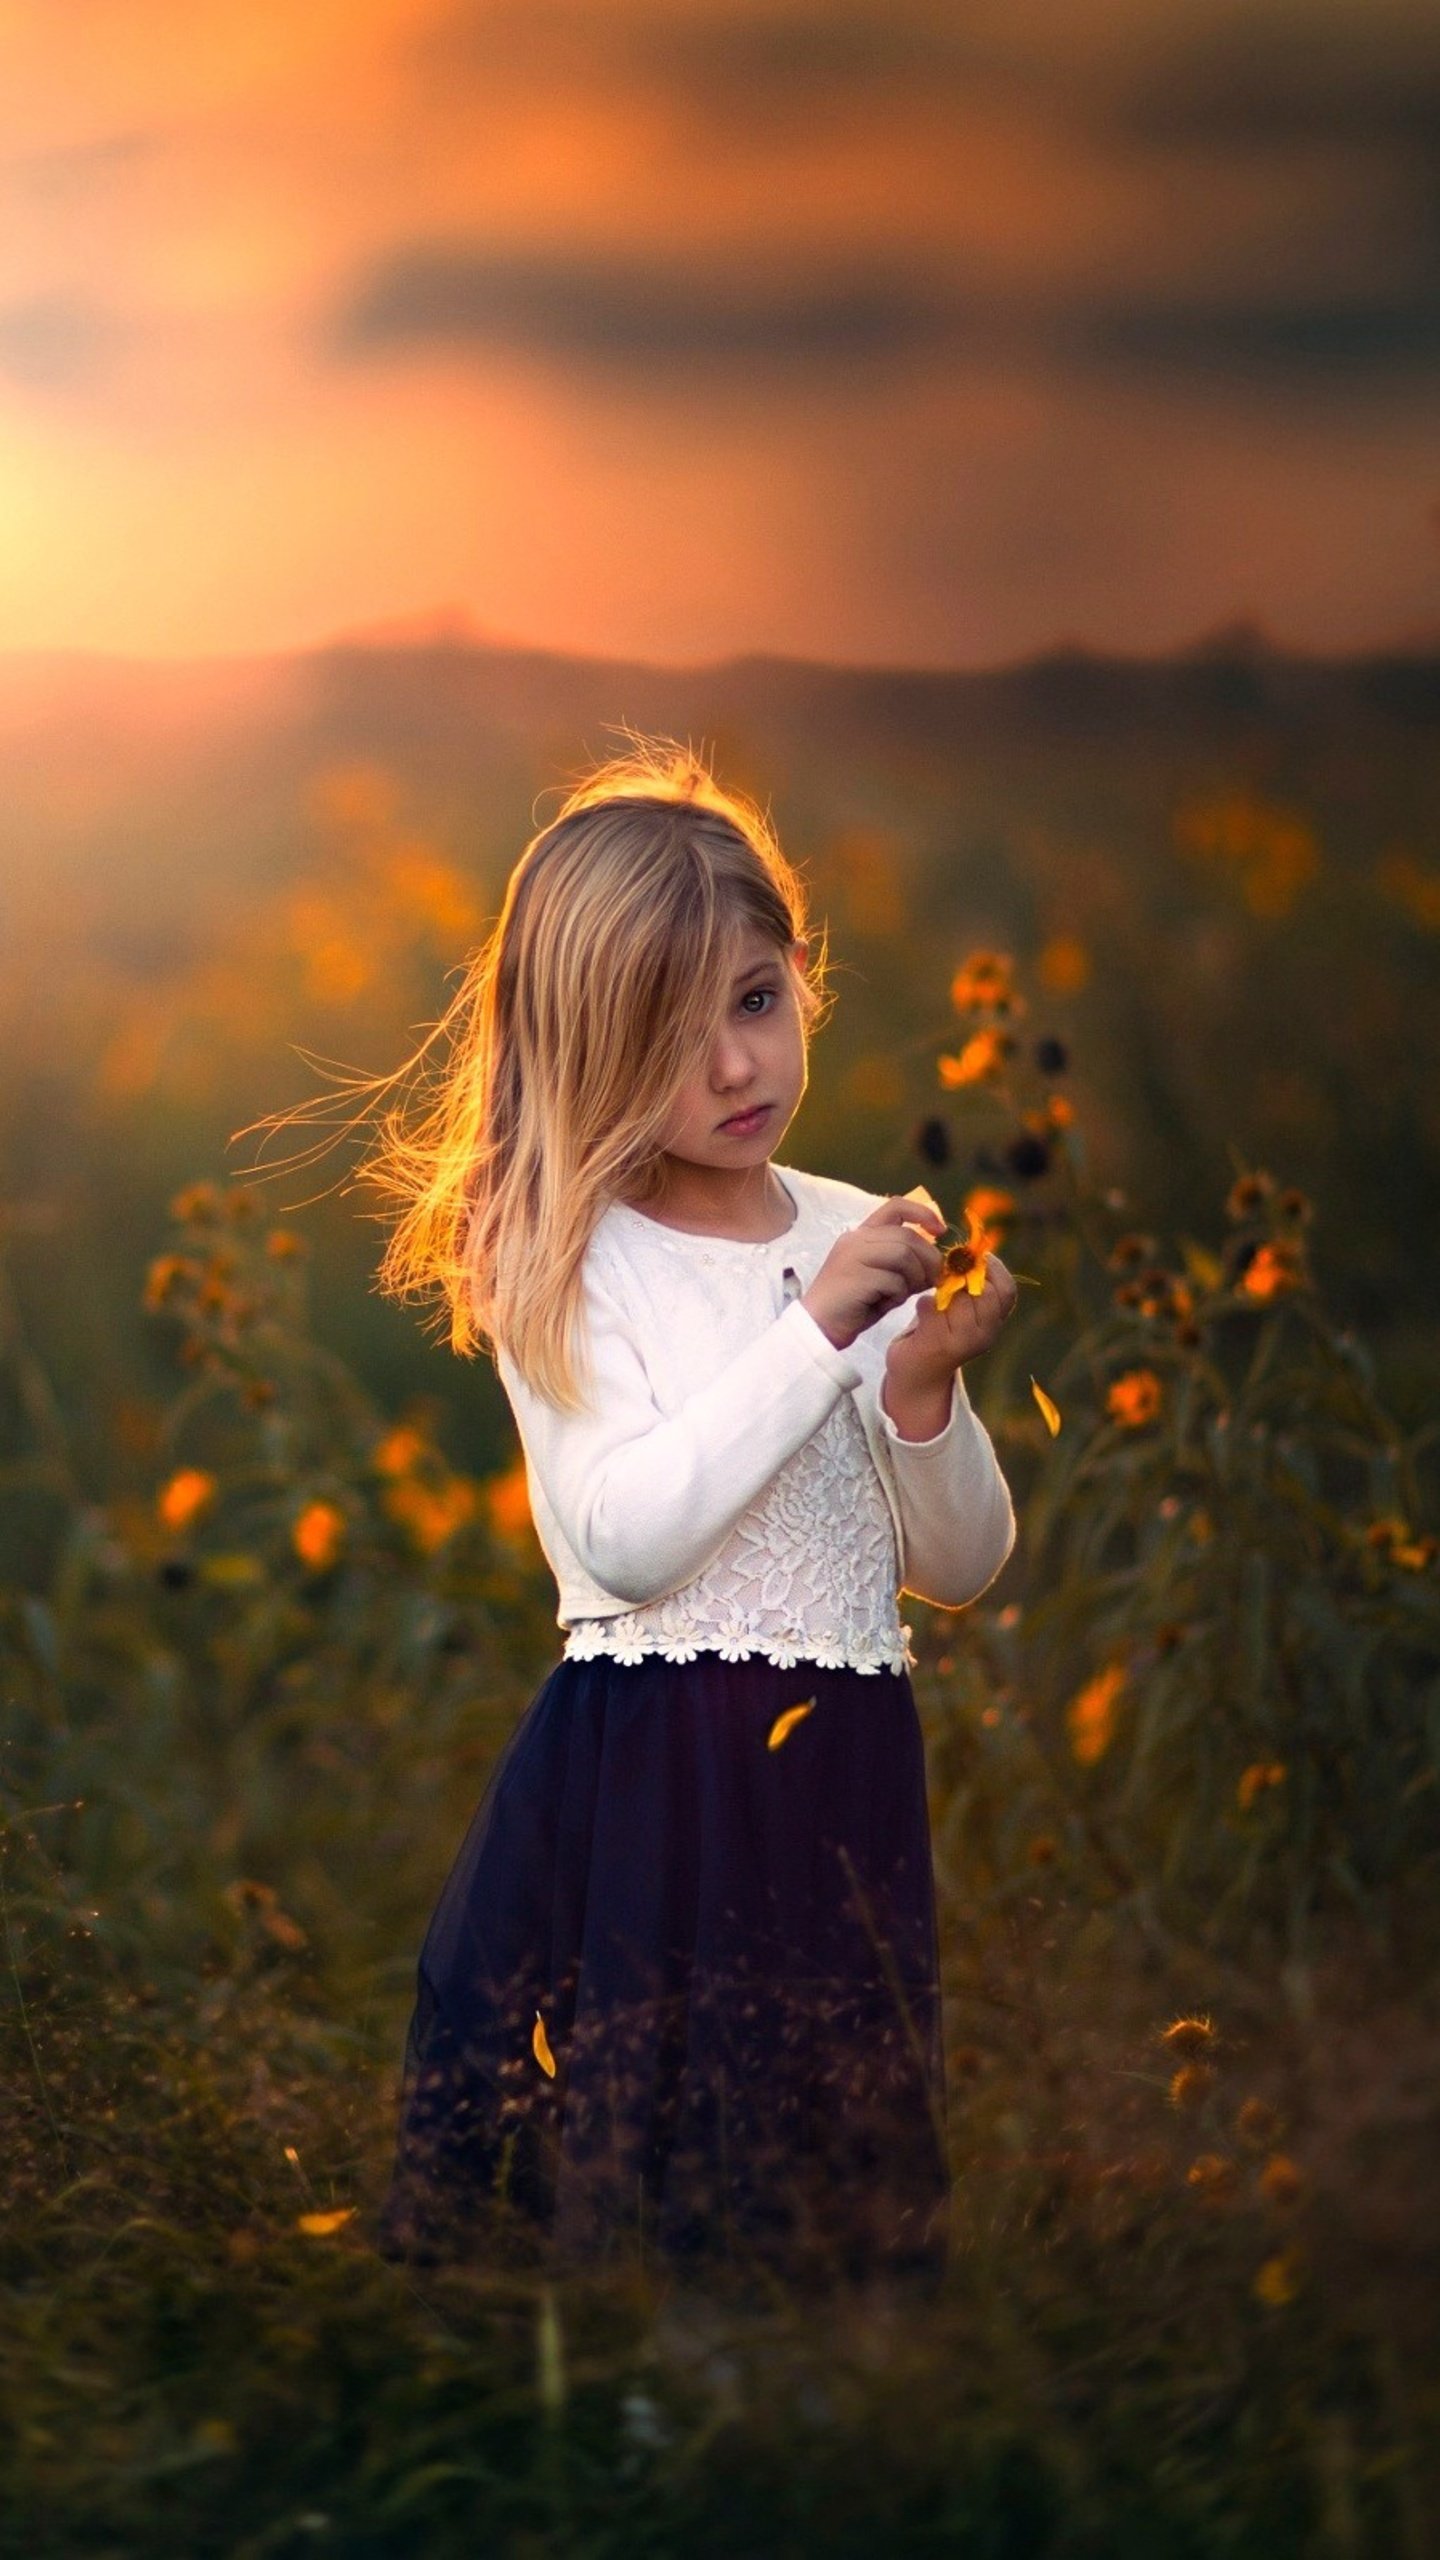 cute-child-girl-with-flowers-outdoors-k5.jpg